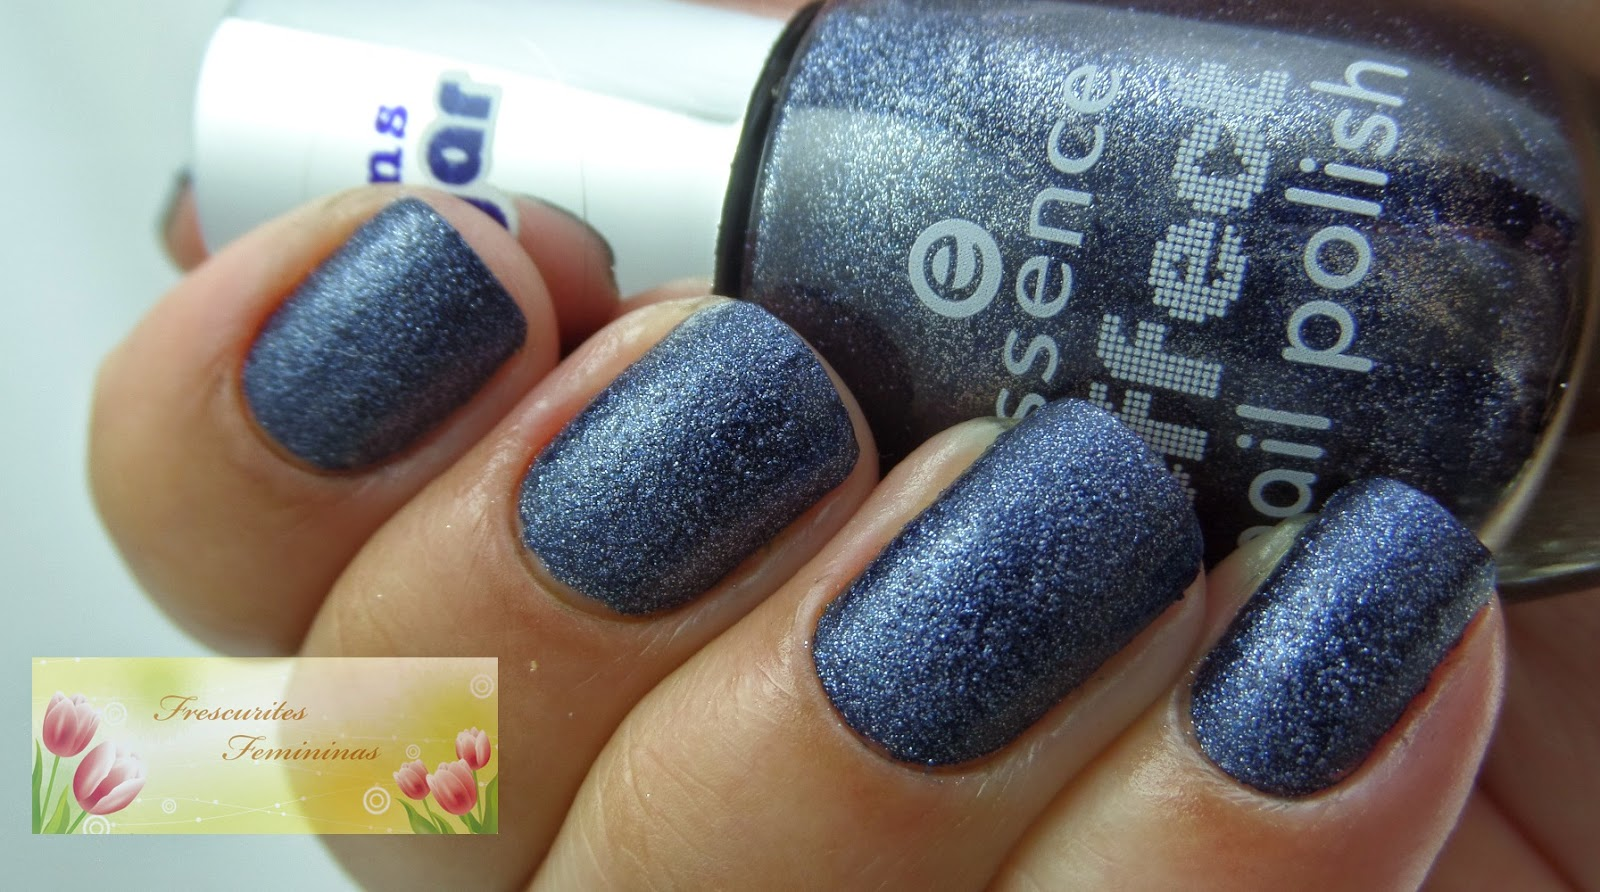 blue nails, frescurites femininas, essence